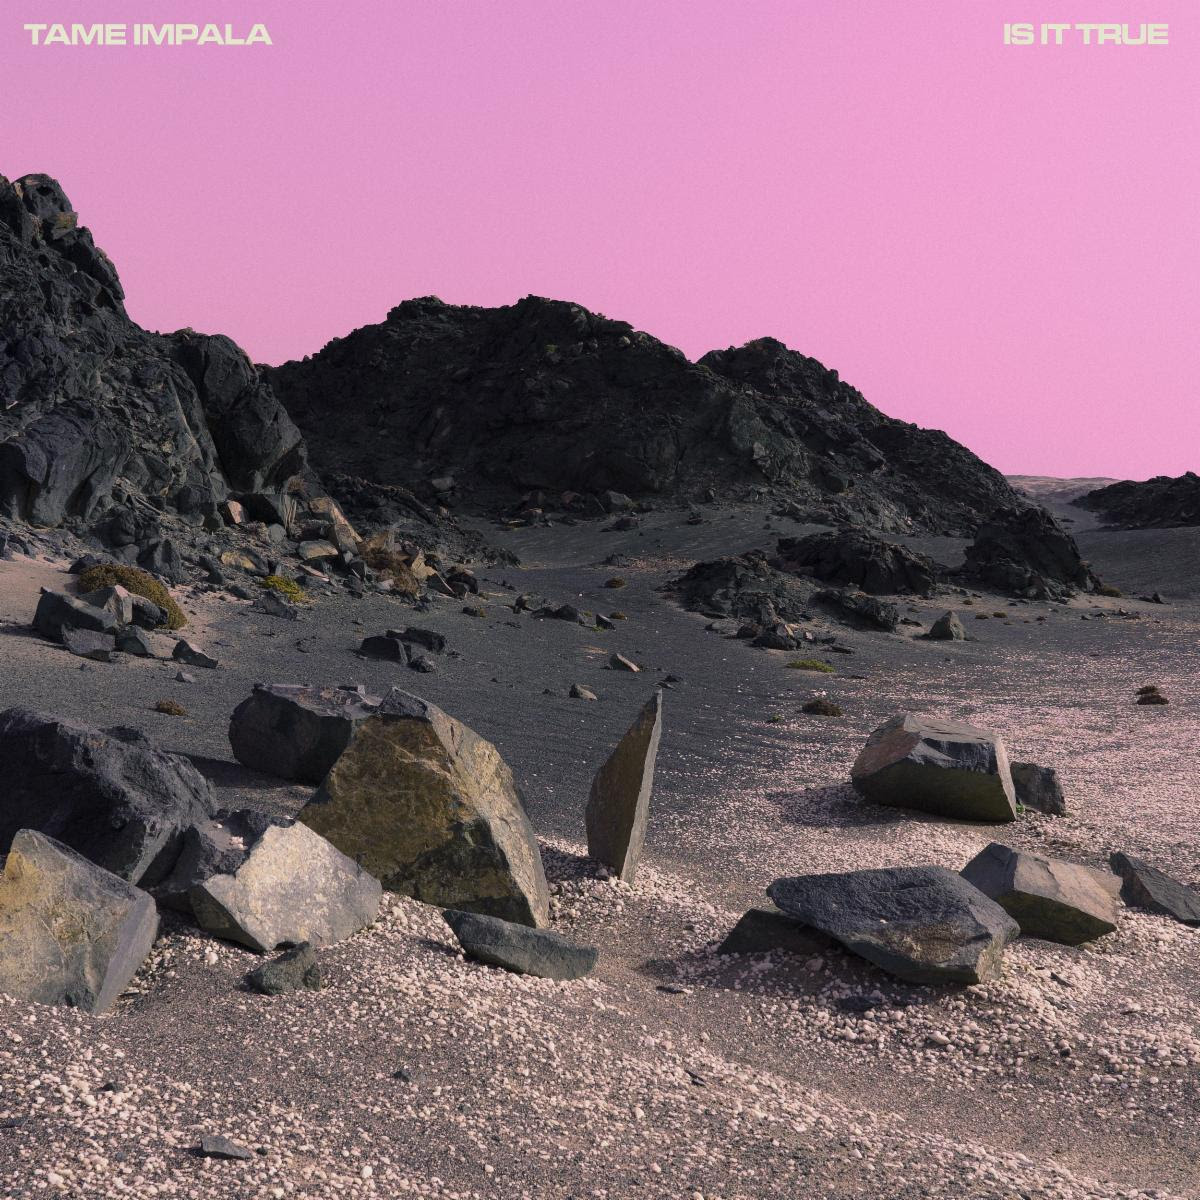 """Tame Impala Releases Four Tet Remix of """"Is It True"""" From 'The Slow Rush' Out Now Via Interscope and various streaming services"""